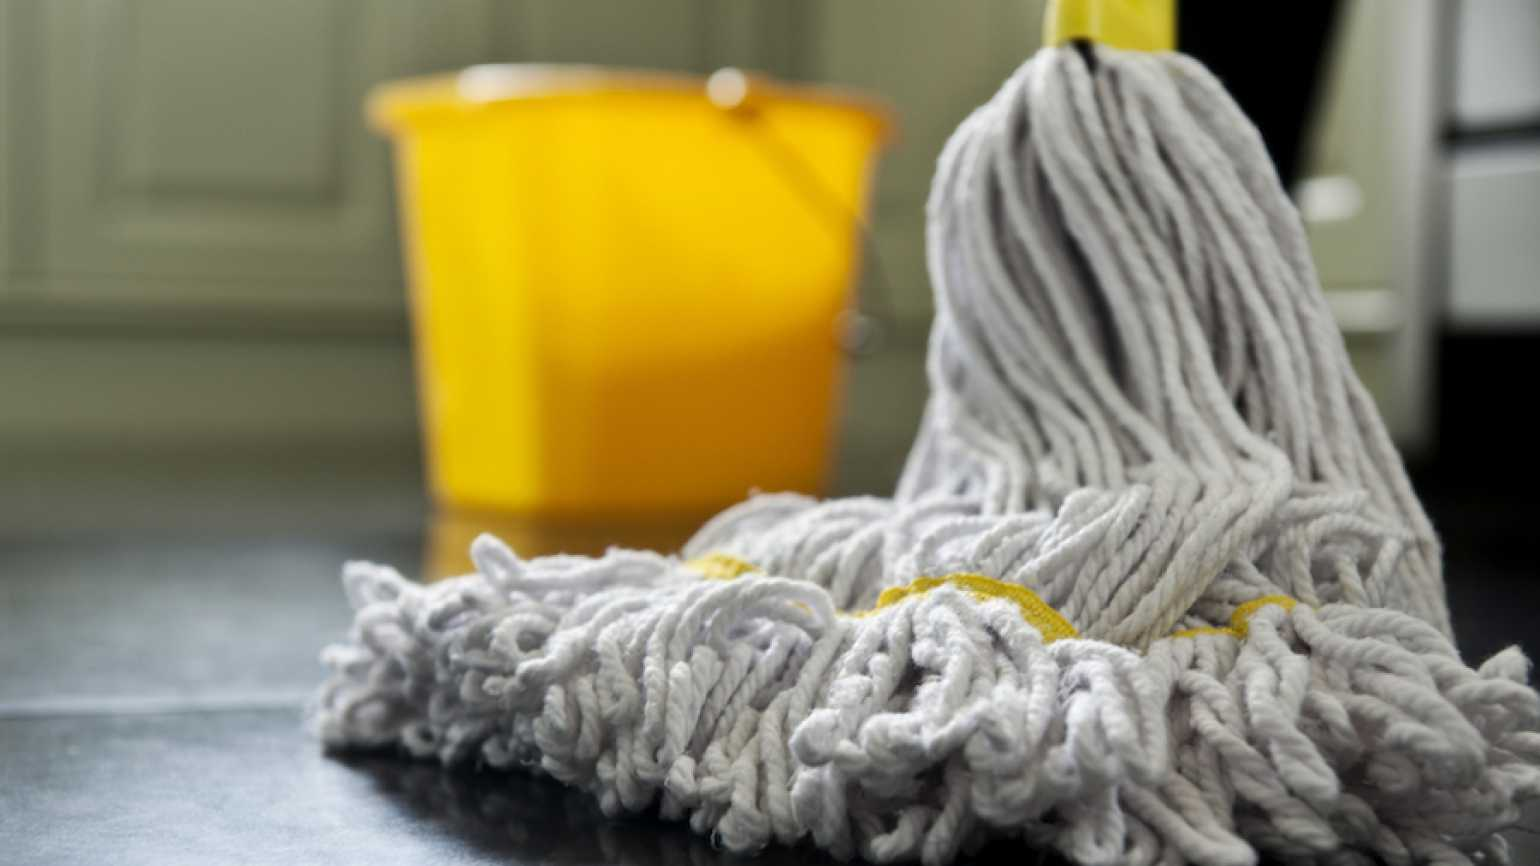 Mop and bucket. Thinkstock.